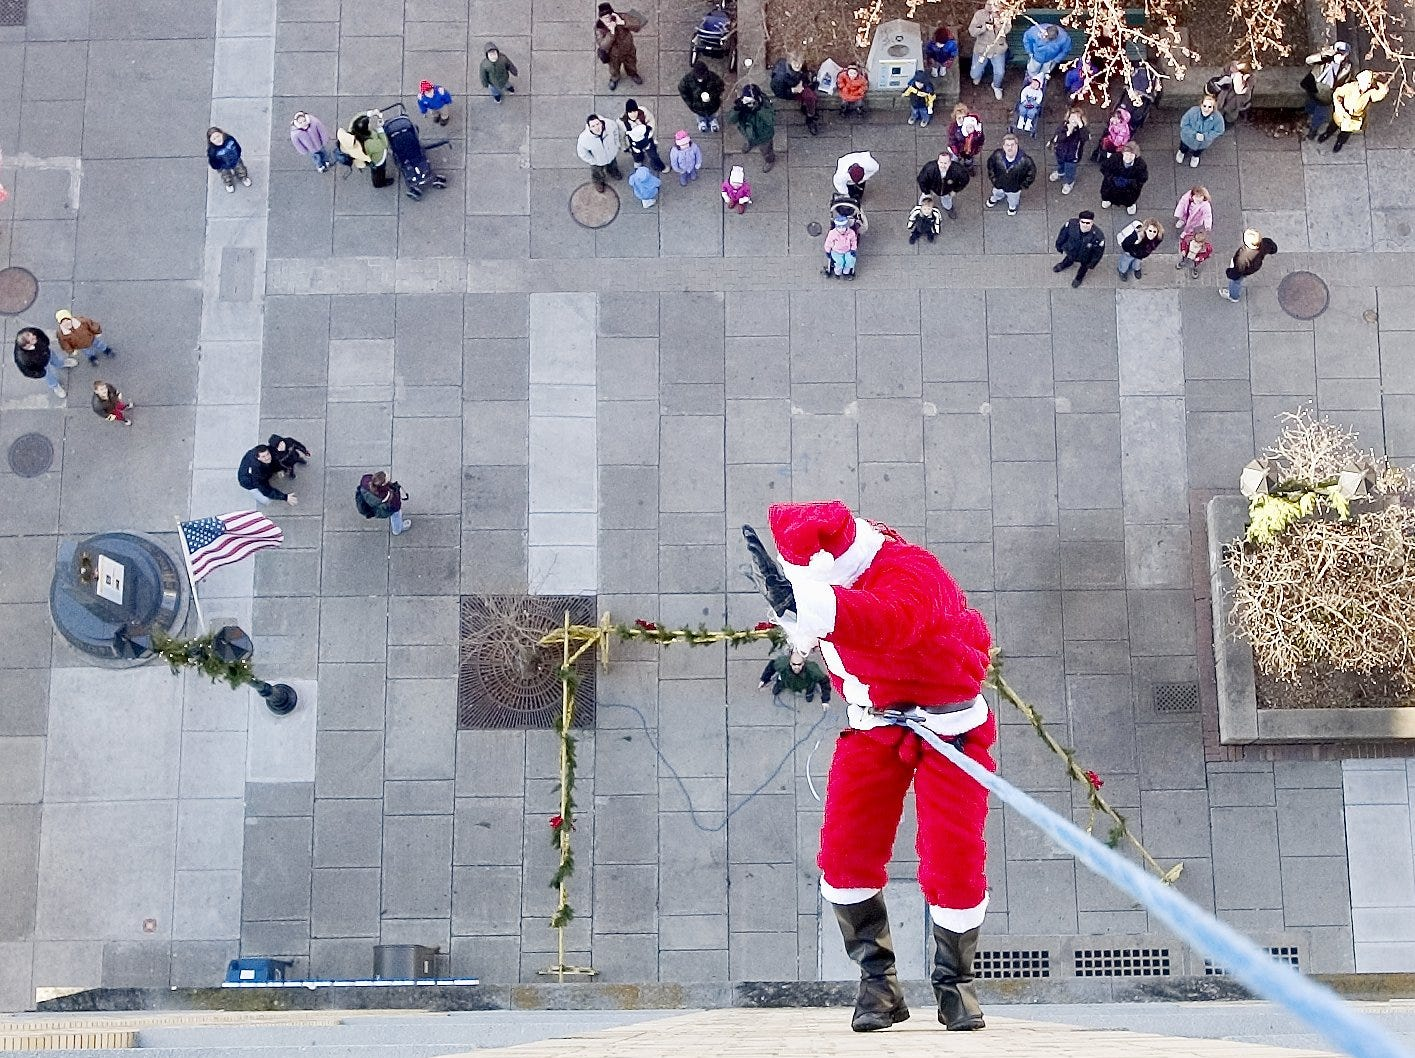 Mike Watkins, dressed as Santa Claus, waves to the crowd below as he rappels from the Bank of America Tower on the Ithaca Commons in 2004. Watkins is an Ithaca Police Department officer and SWAT team leader. The event kicked off Downtown Ithaca's Holidays Around the World celebration.